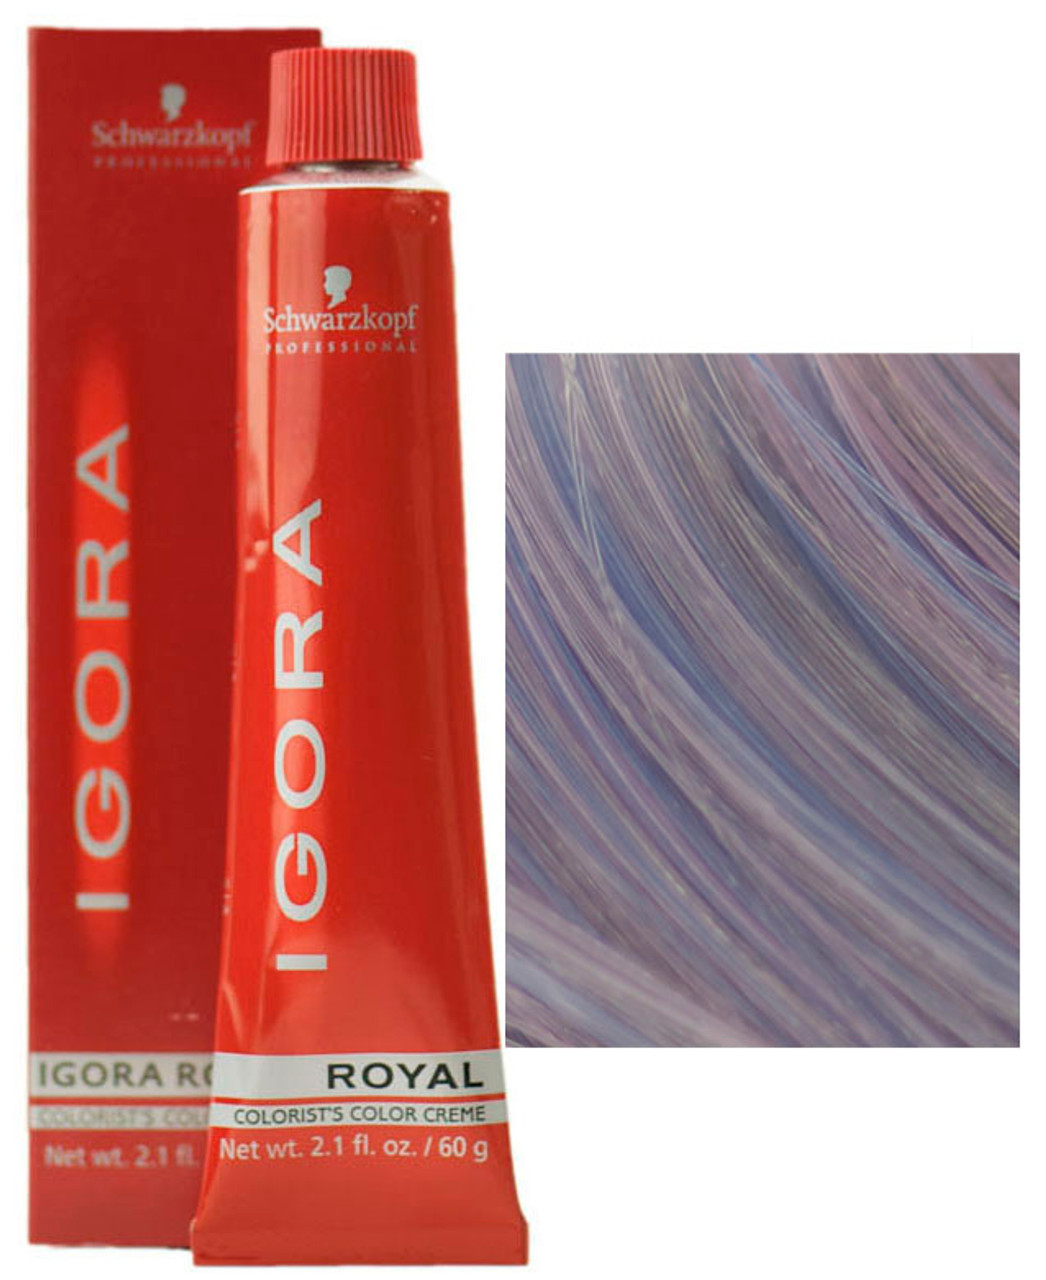 Schwarzkopf Professional Igora Royal Hair Color Sleekshop